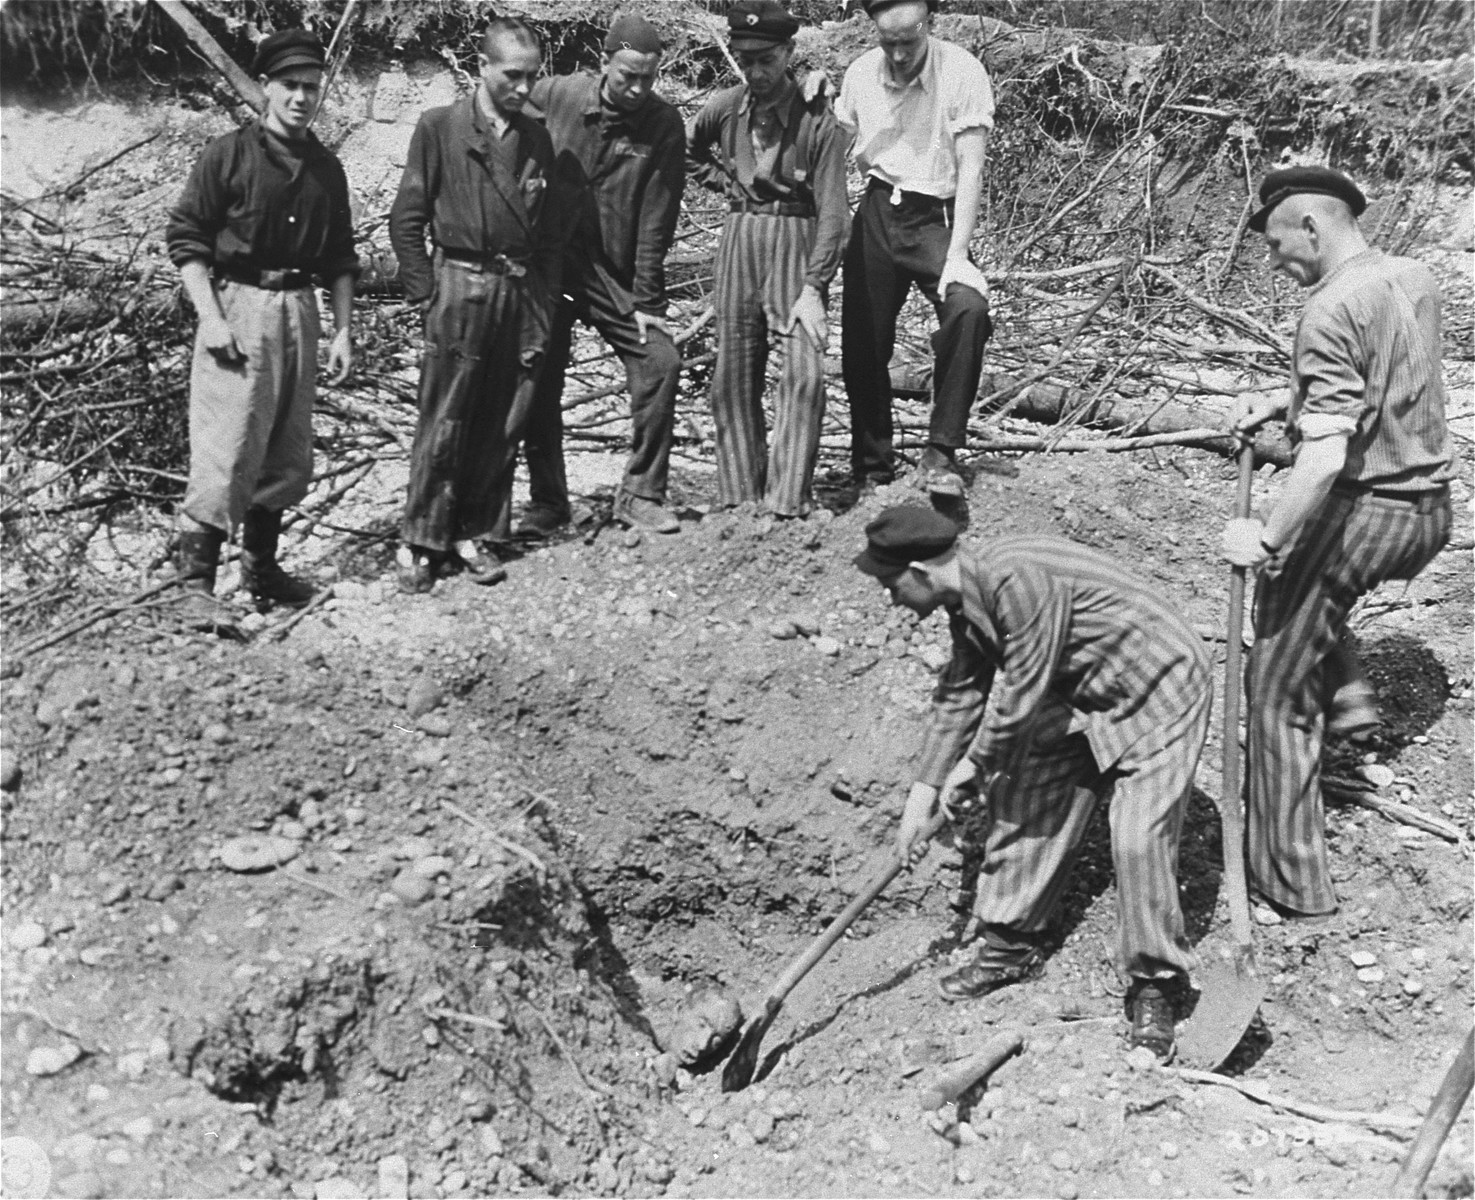 Survivors in the Linz concentration camp exhume bodies from a bomb crater.